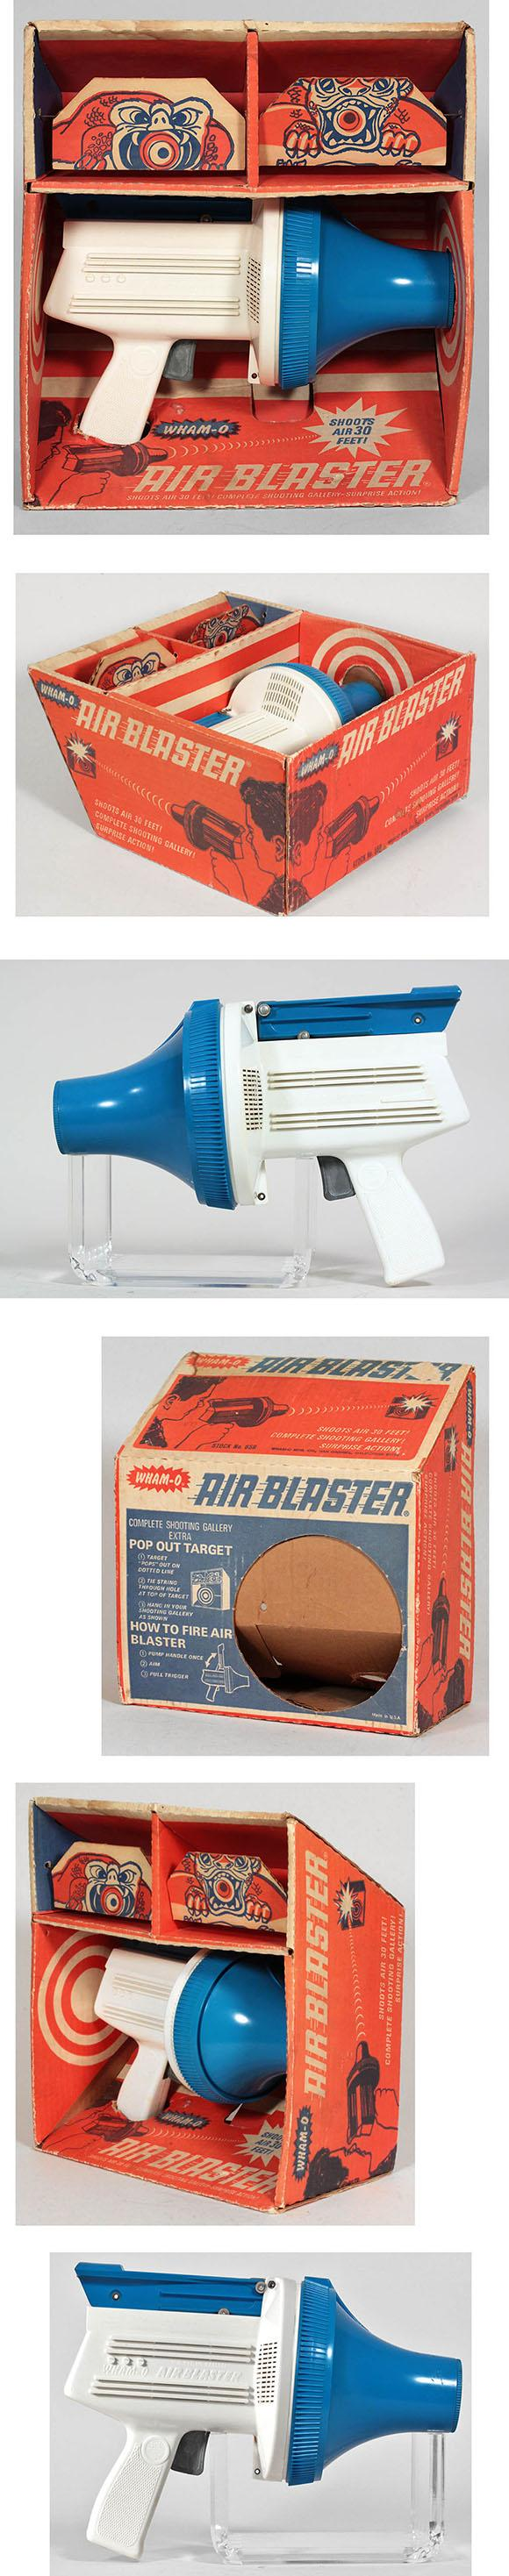 1966 Wham-O, Air Blaster in Original Box